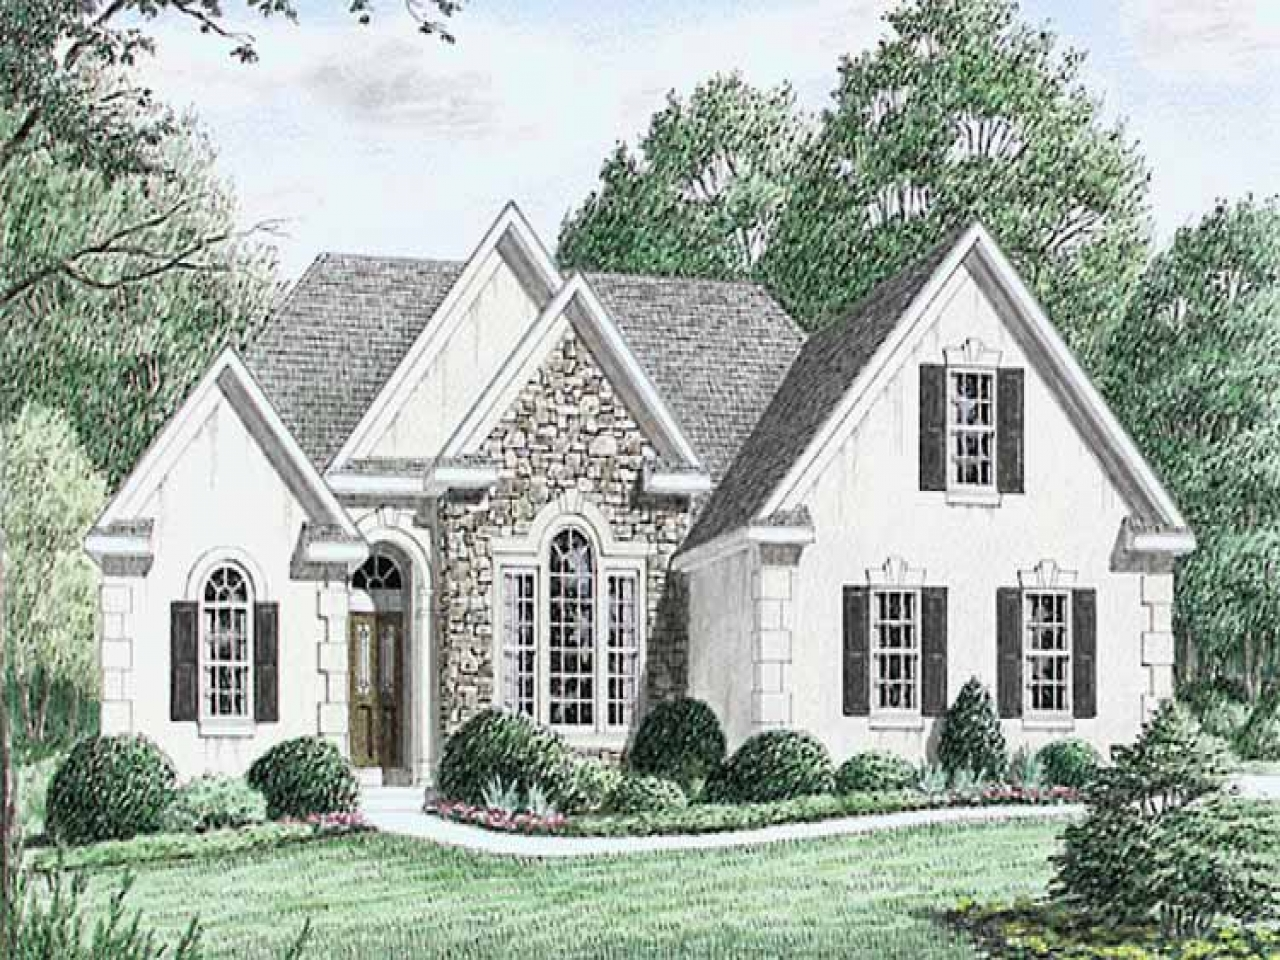 english cottage style house plans english country cottage old style cottage house plans ireland old florida cottage house plans